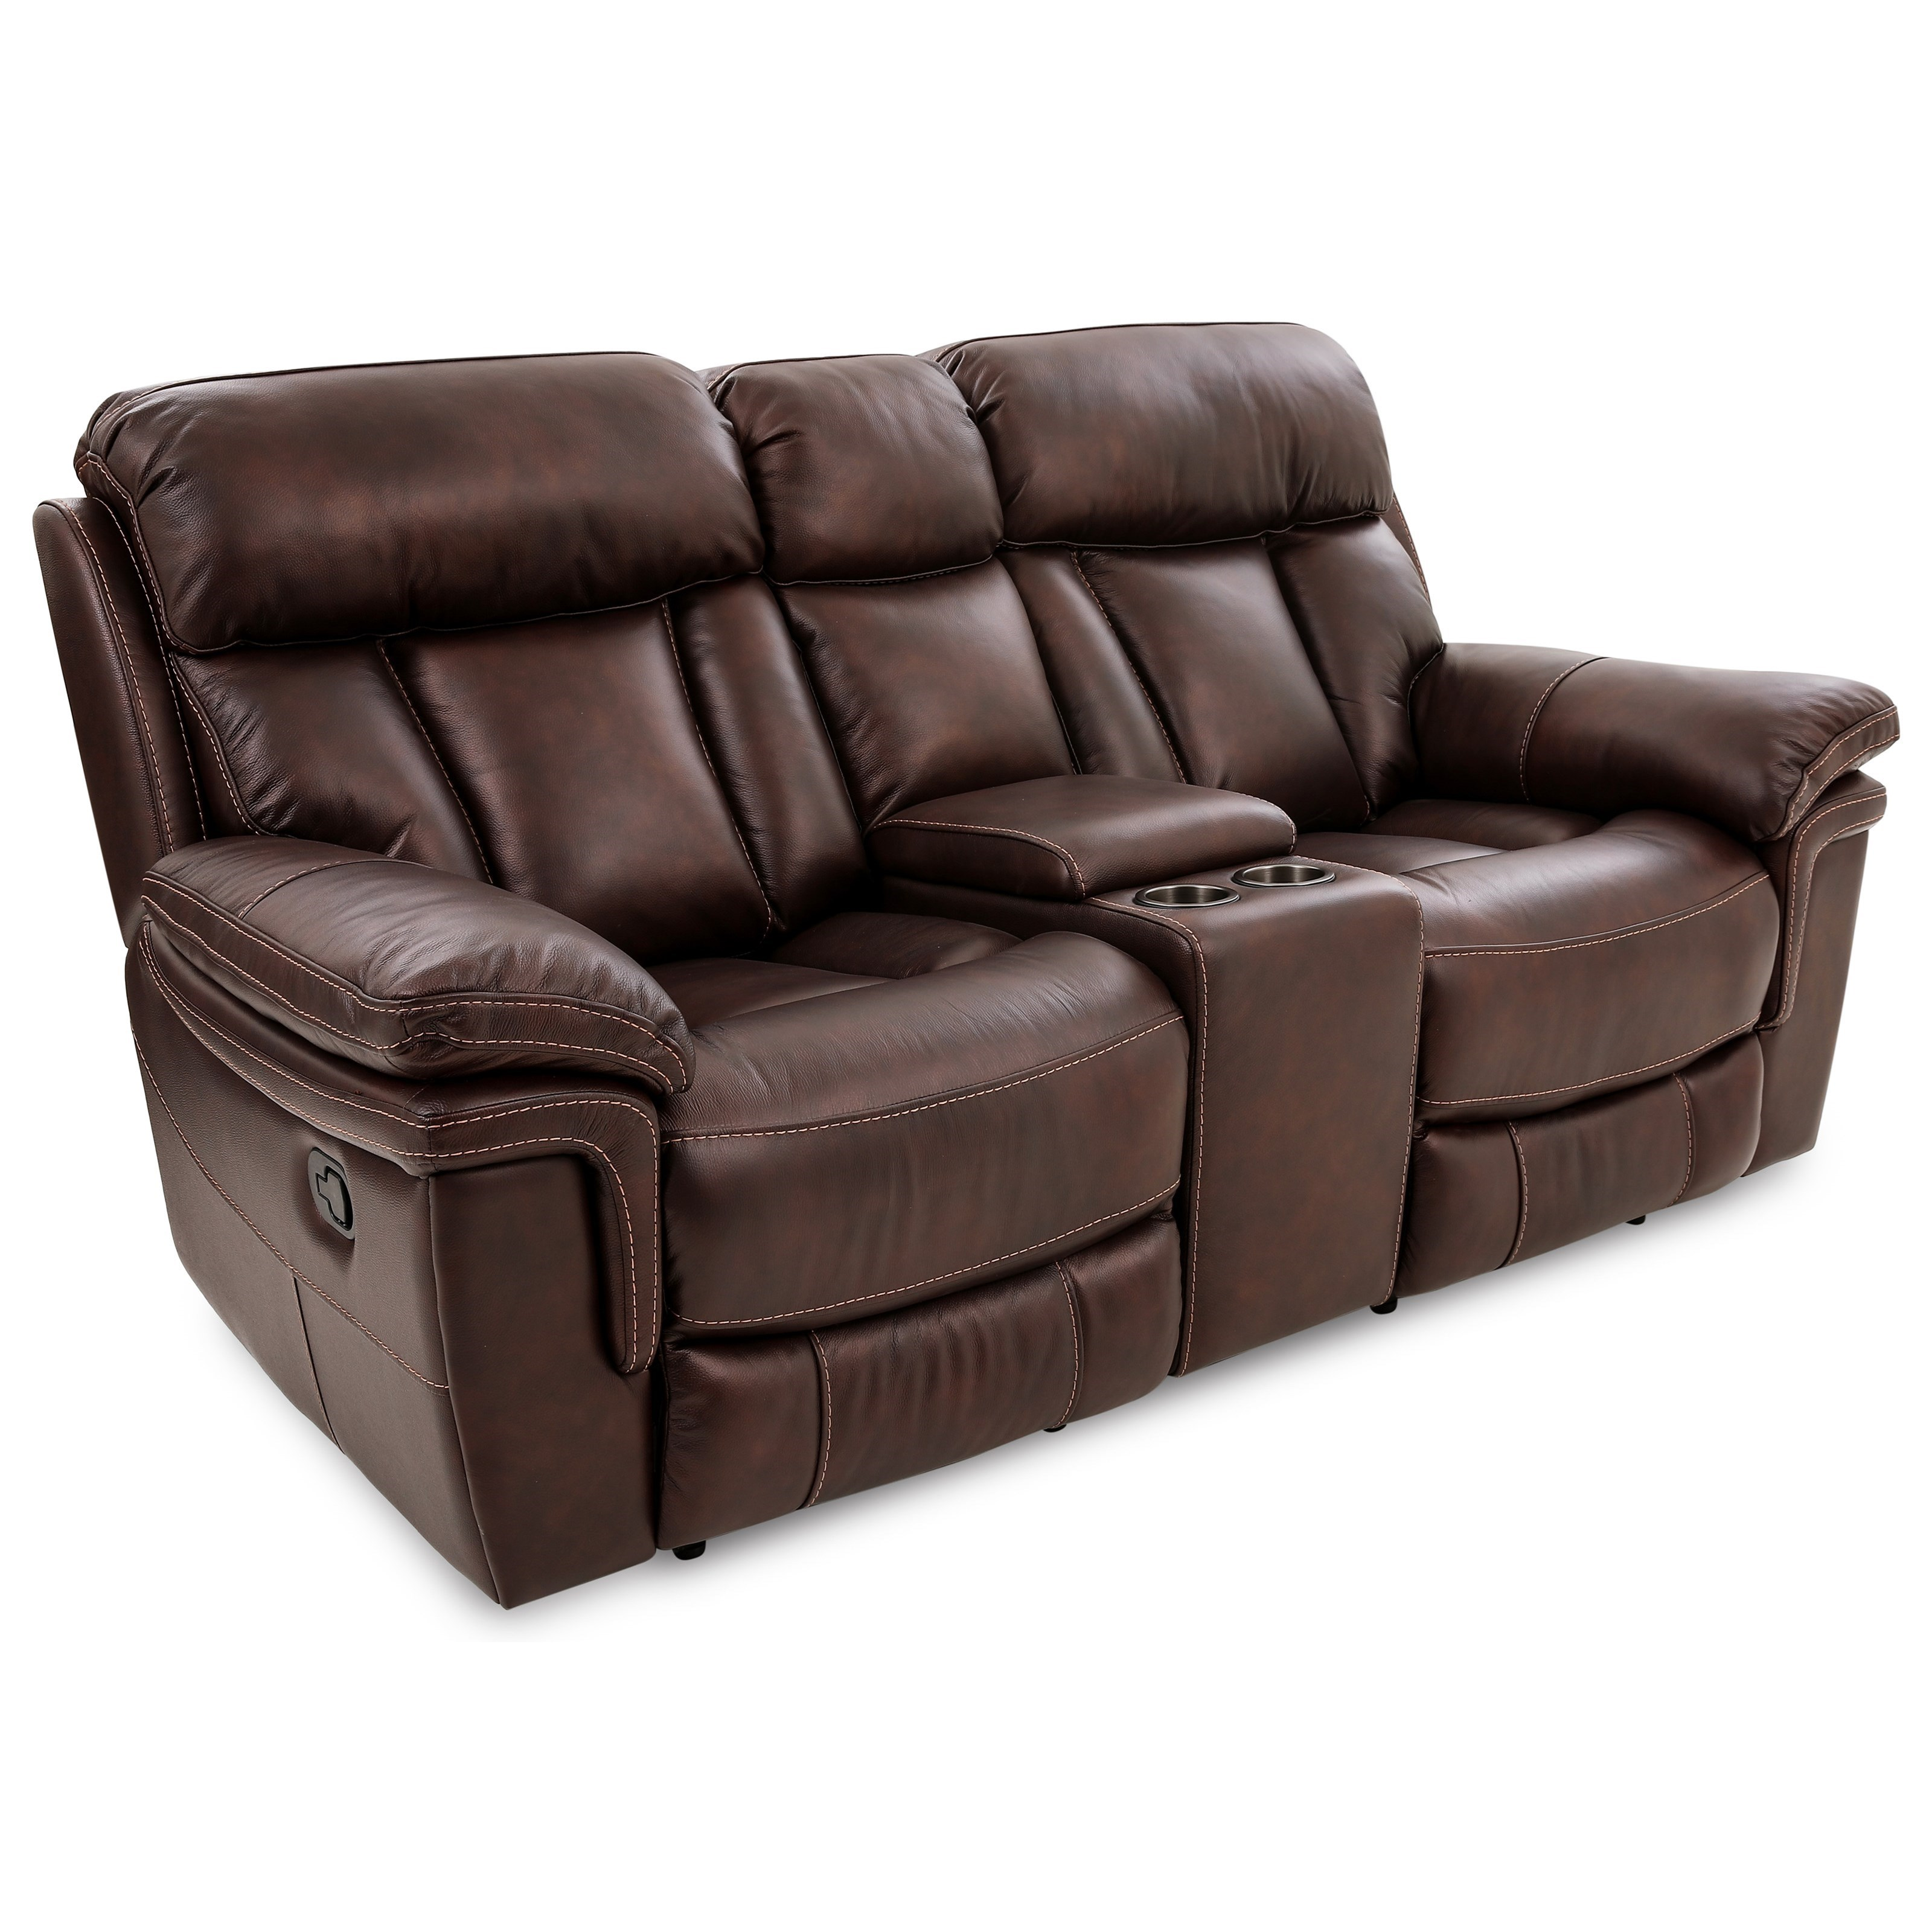 Bryant Power Leather Reclining Loveseat W/CONSOLE at Walker's Furniture